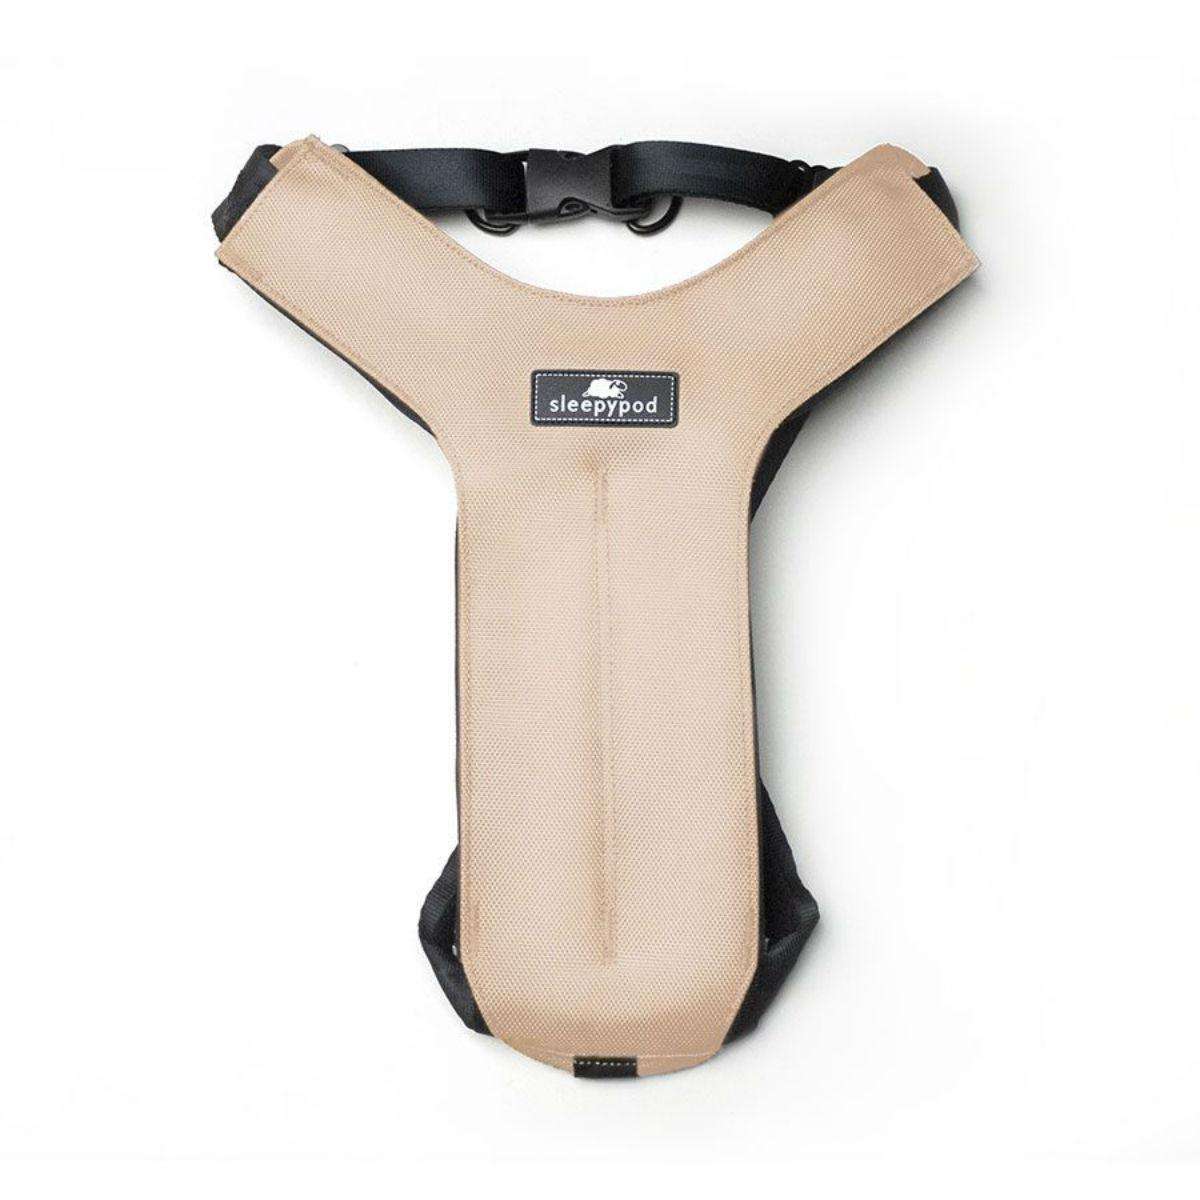 Clickit Sport Dog Harness by Sleepypod - First Blush